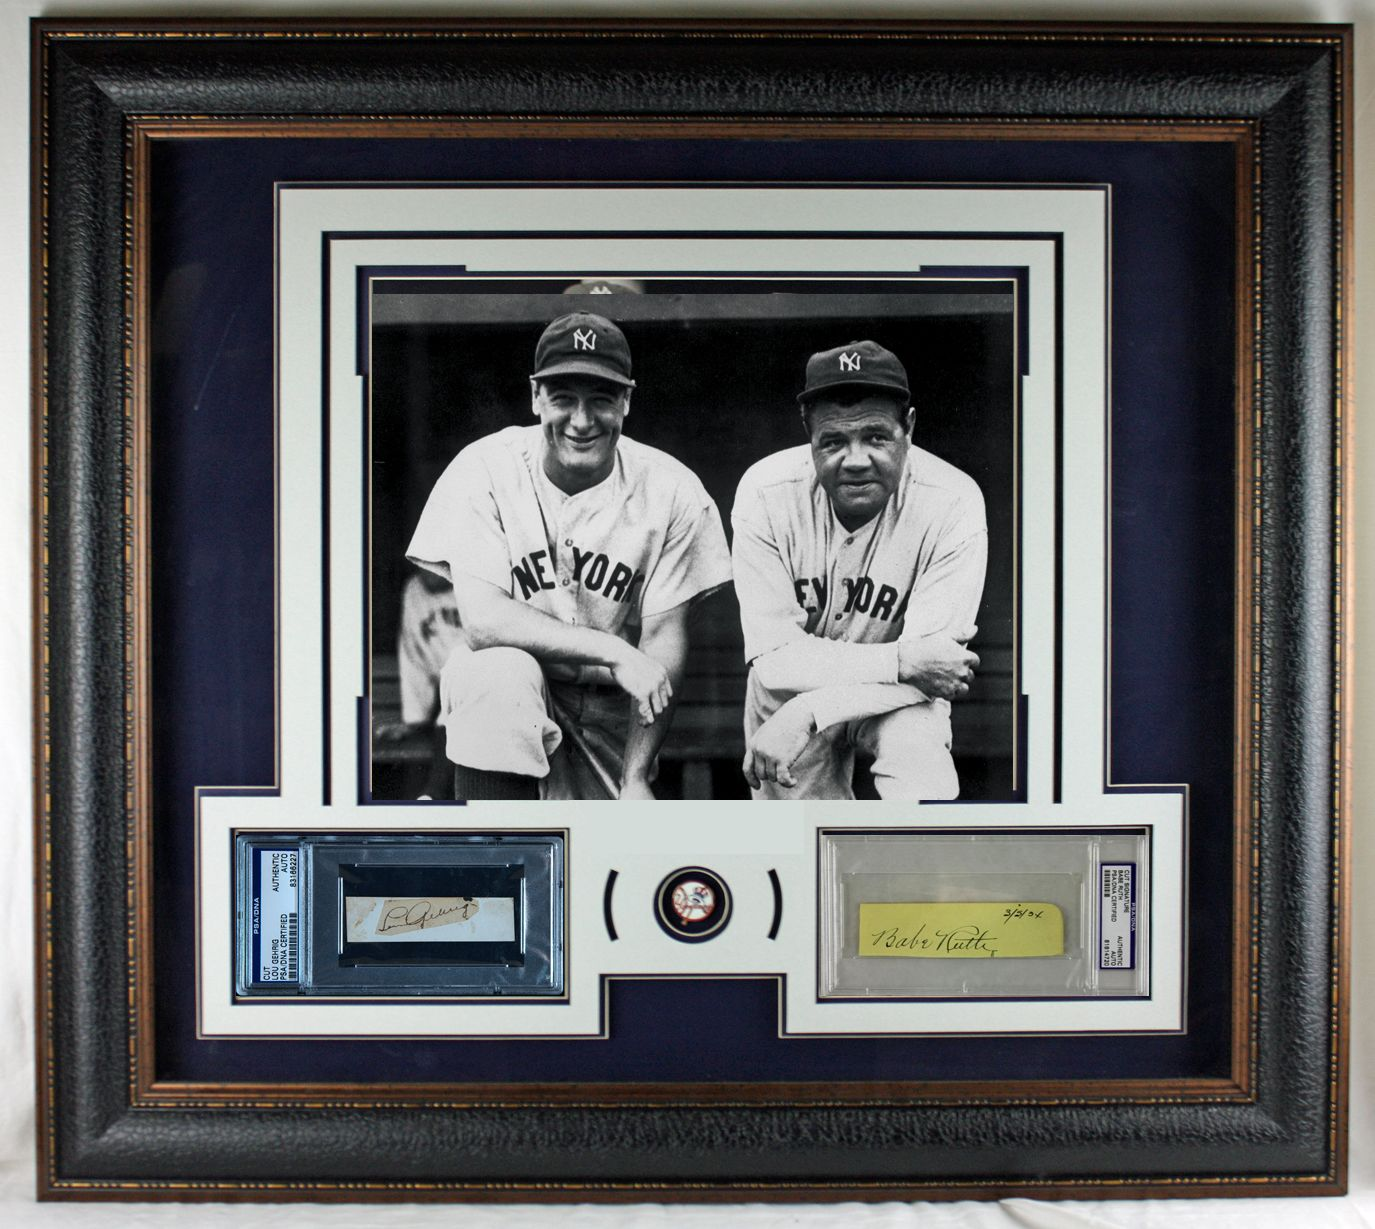 1ee82be2f Yankee Icons: Babe Ruth & Lou Gehrig Choice Ink Signatures in a Custom  Framed Display ...